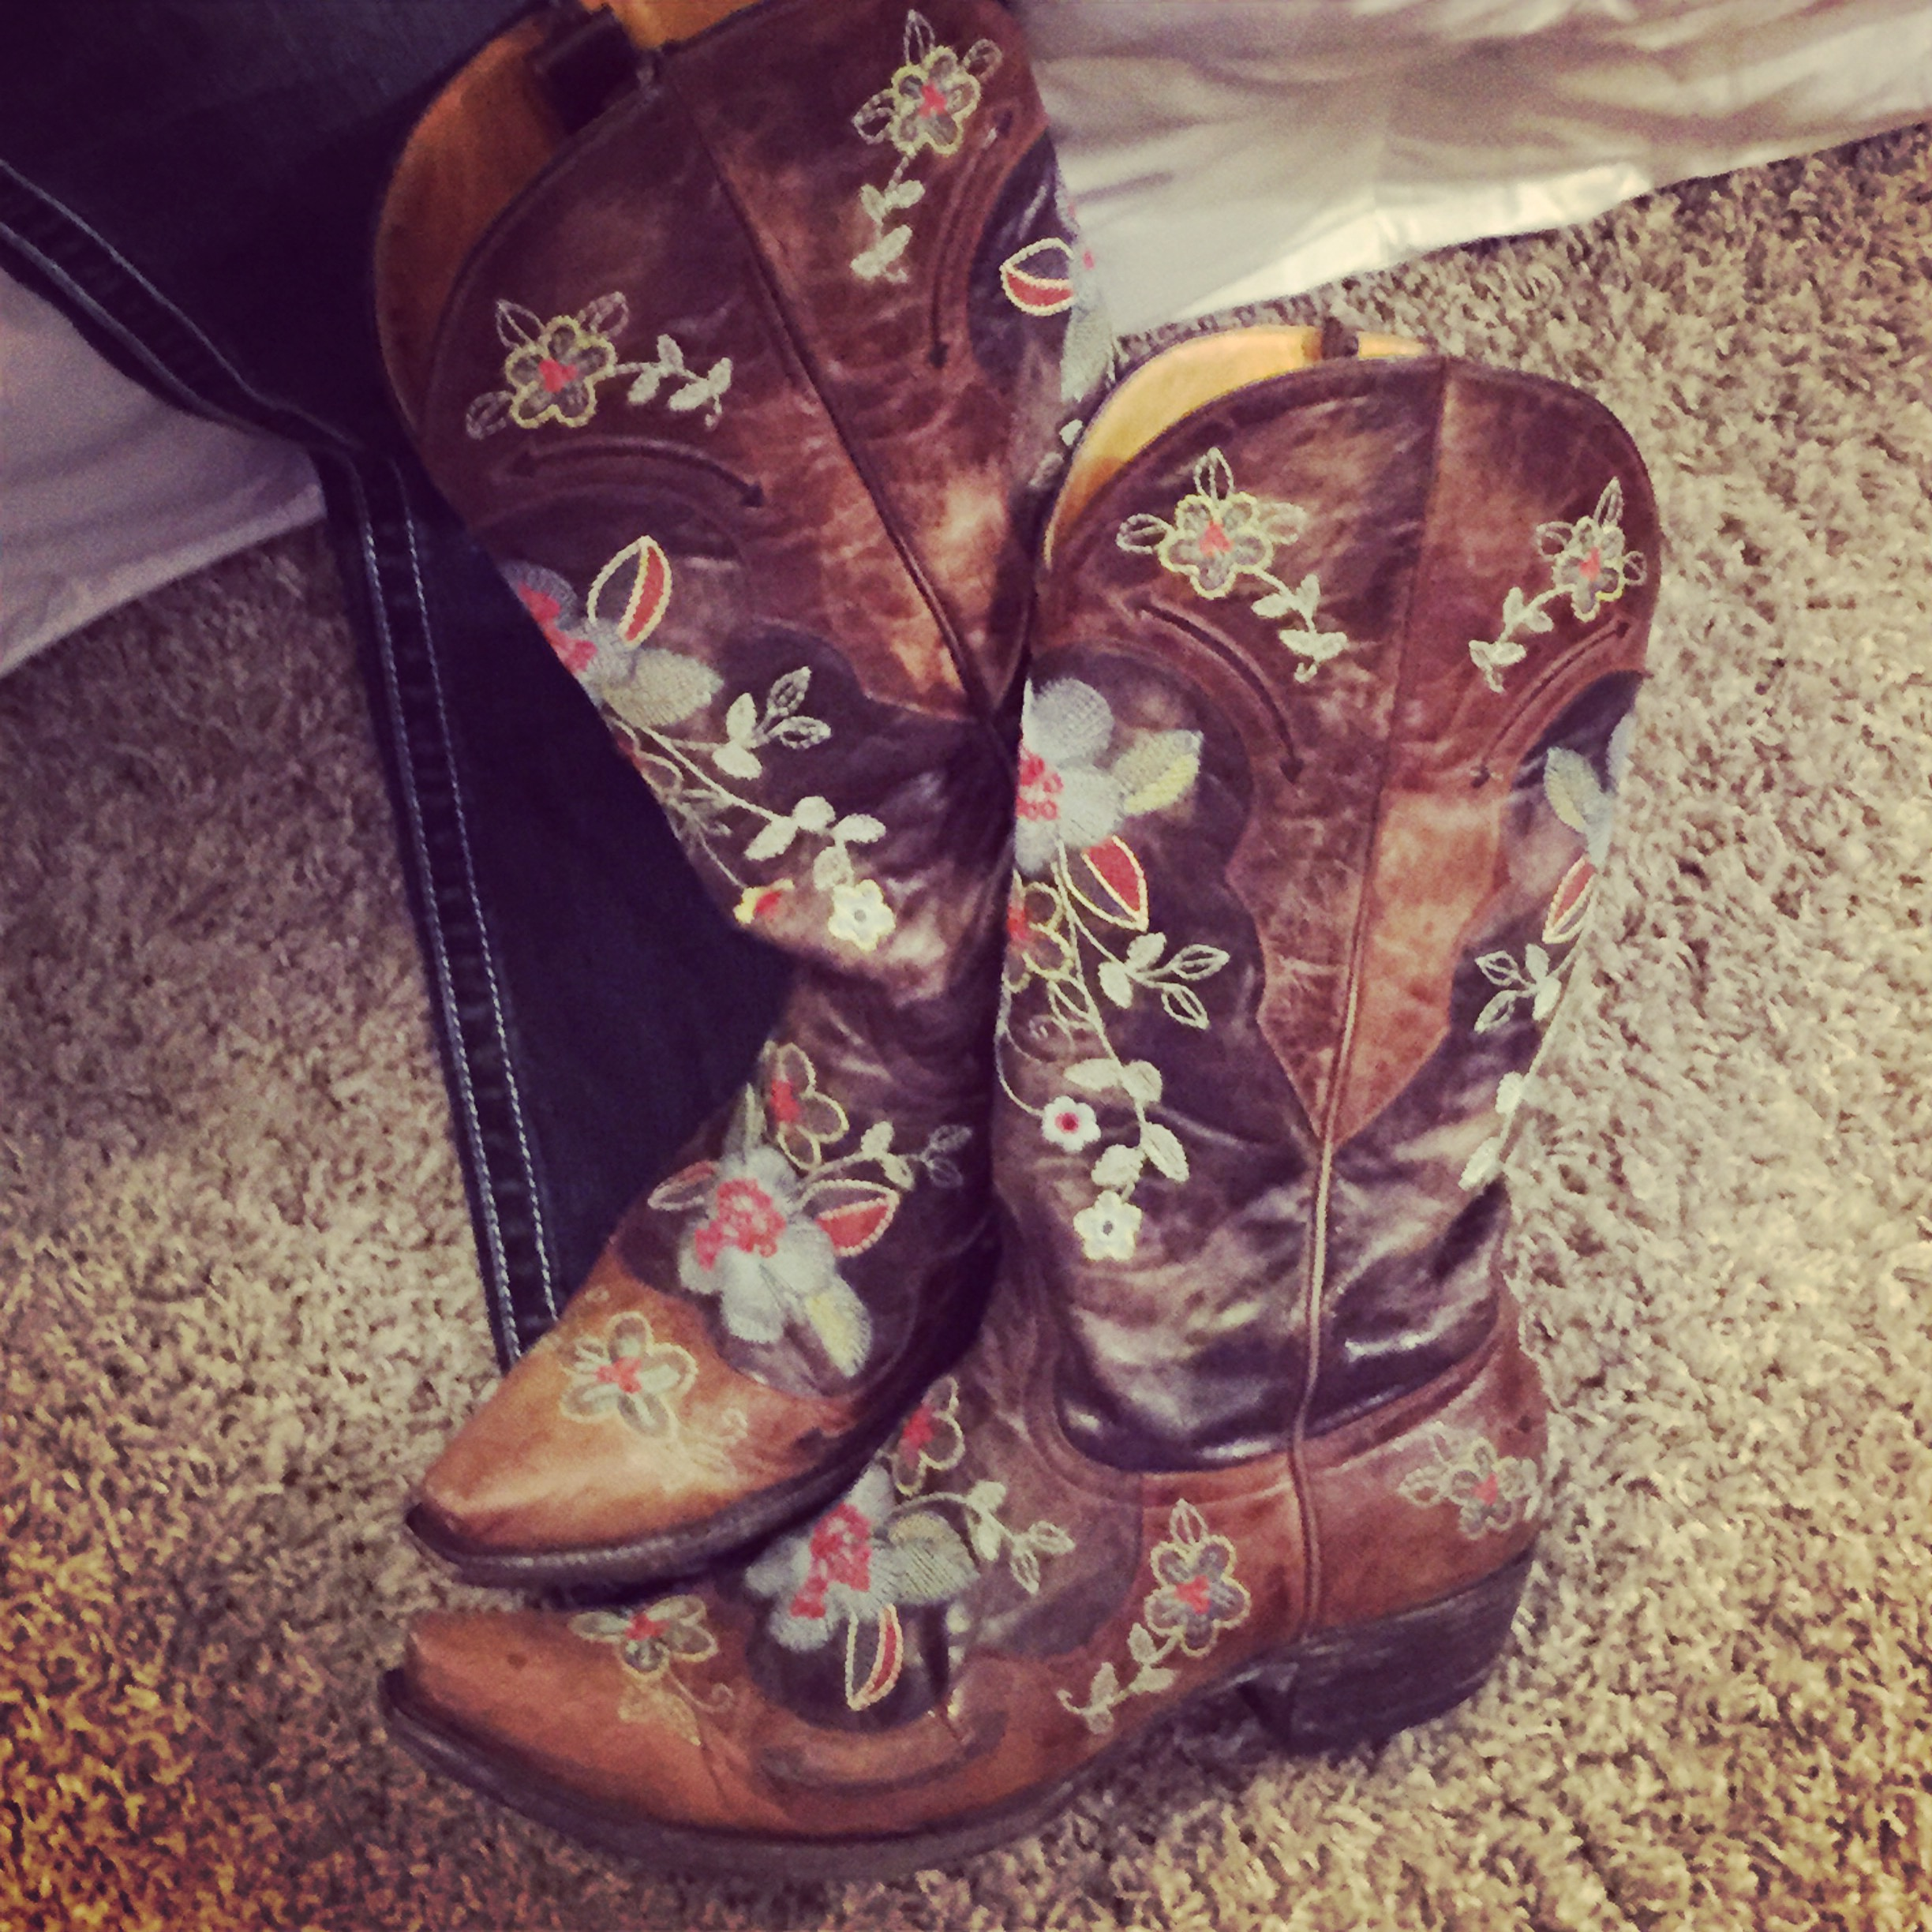 What I'm Wearing–A Little Bit Country